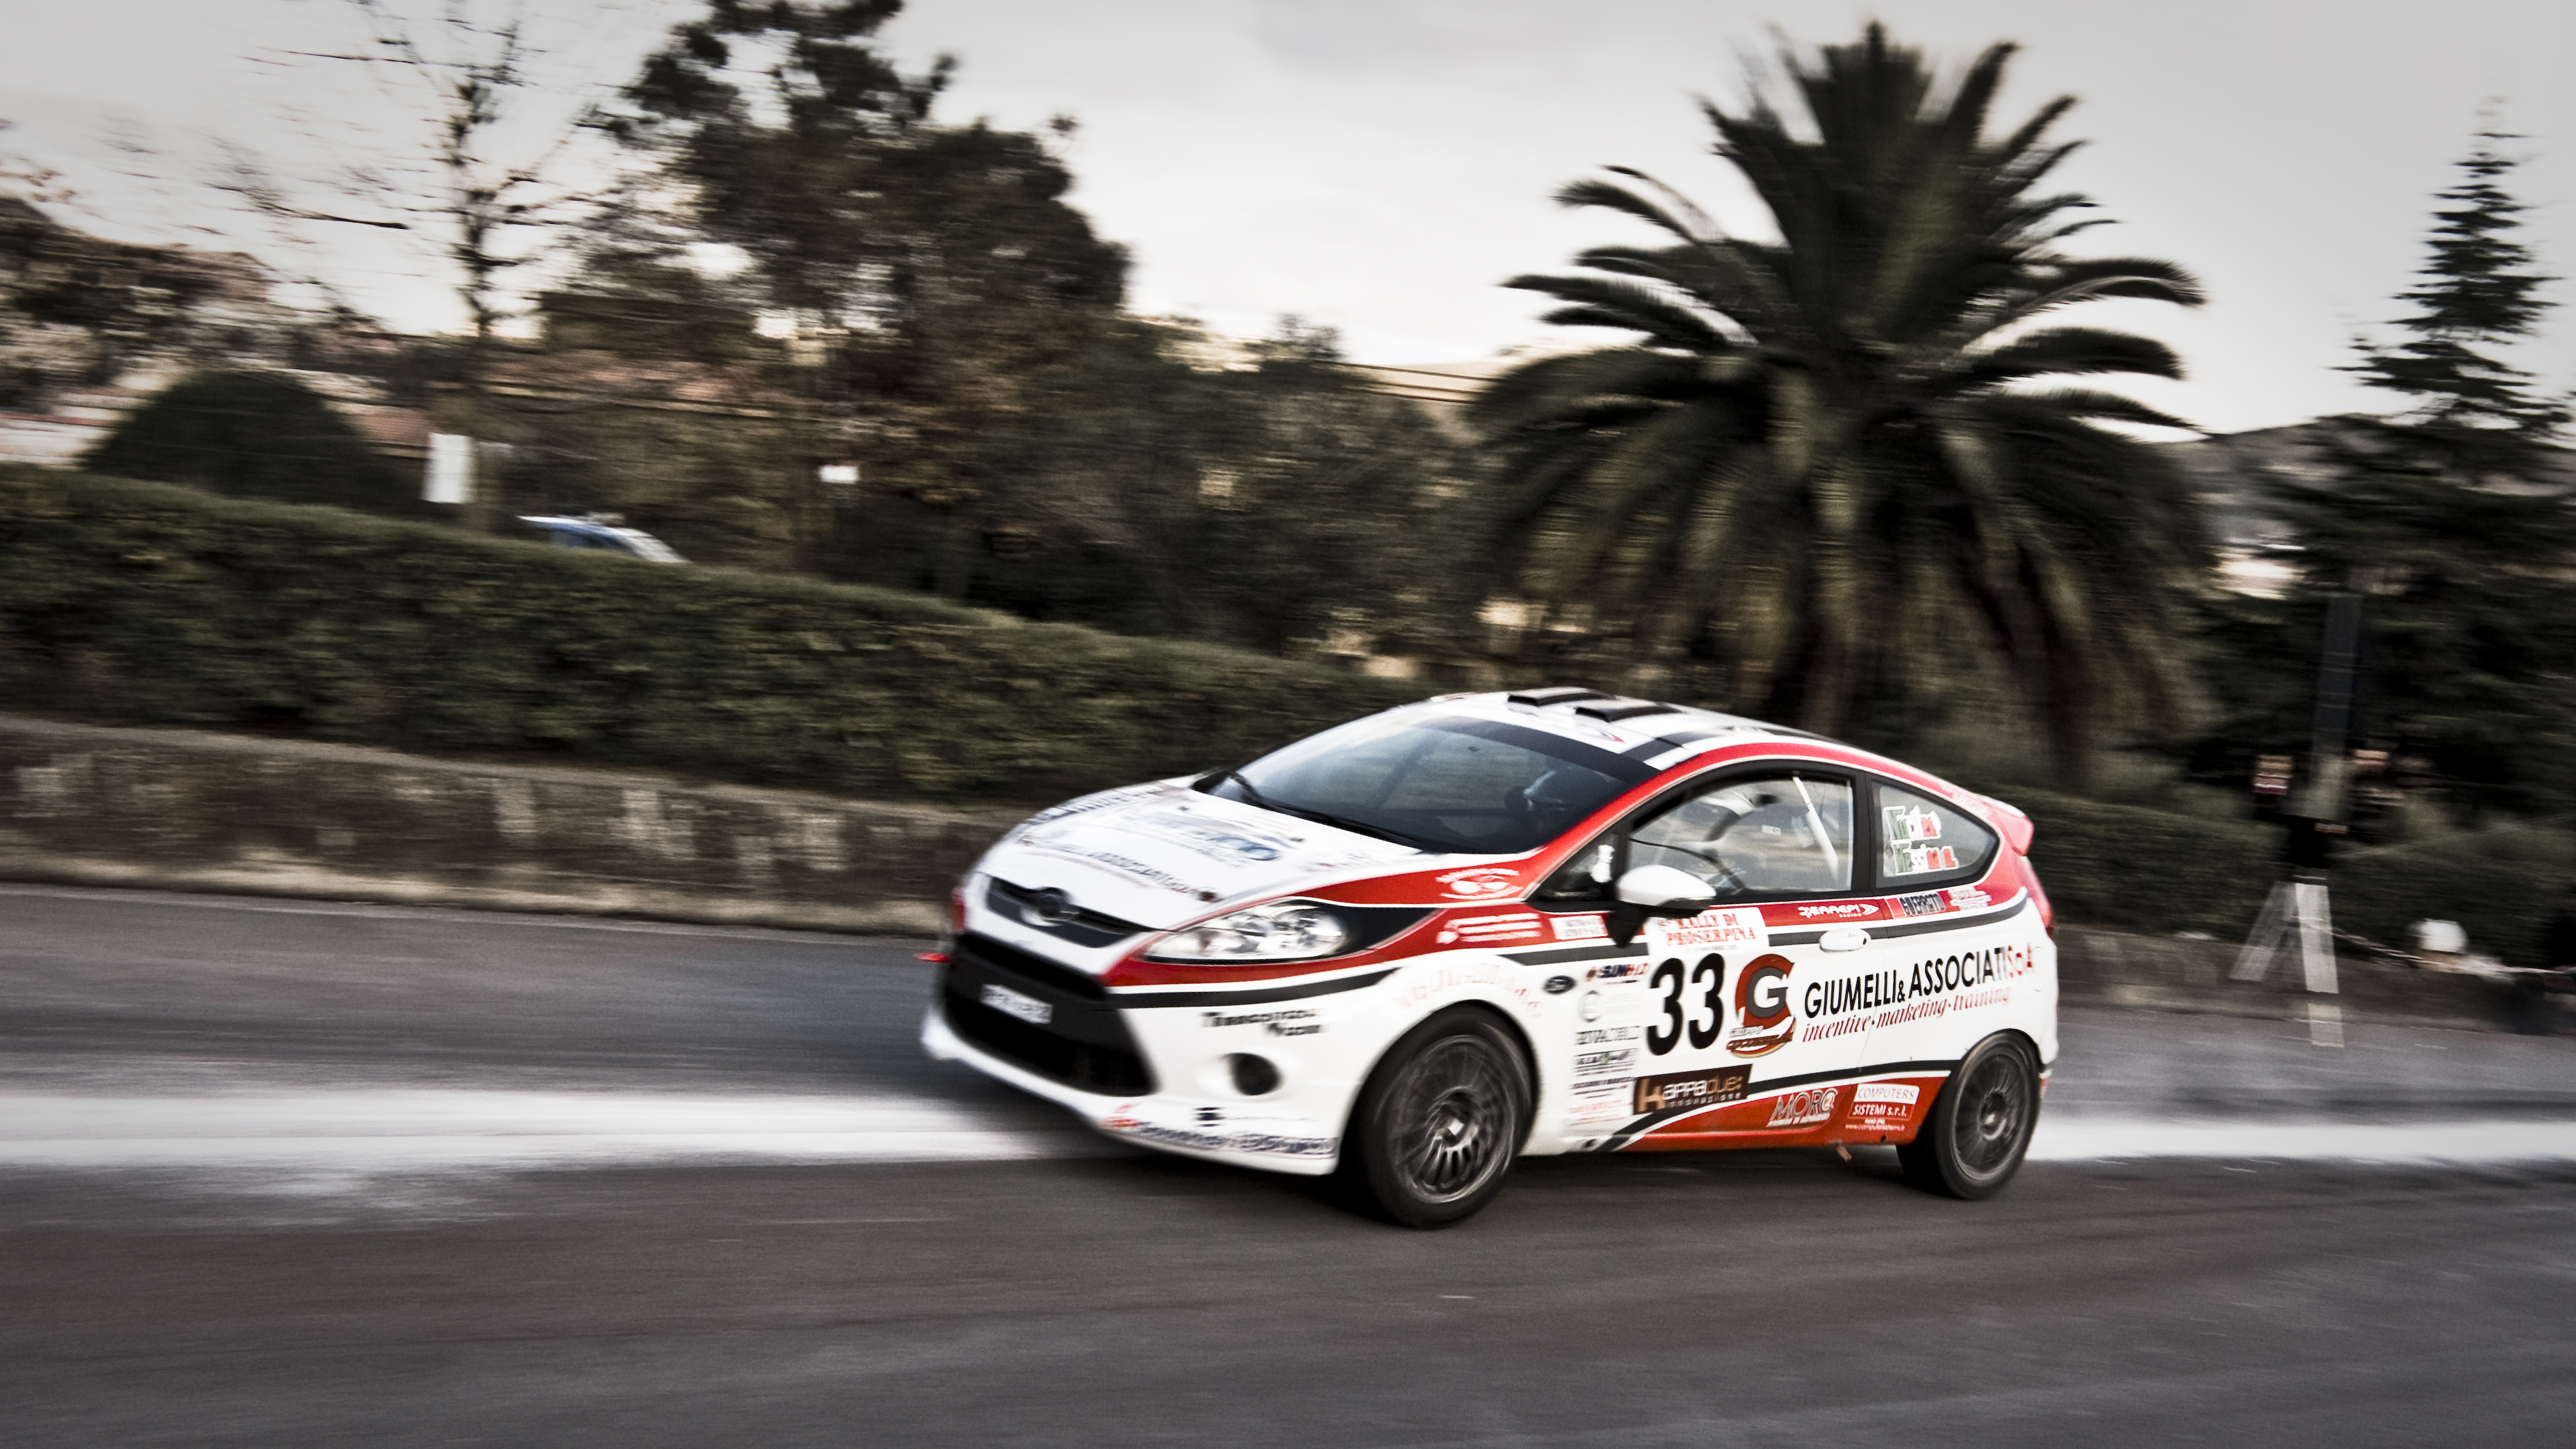 g nucita e m messina ford fiesta r2 25 rally proserpina 2010 flickr photo sharing. Black Bedroom Furniture Sets. Home Design Ideas